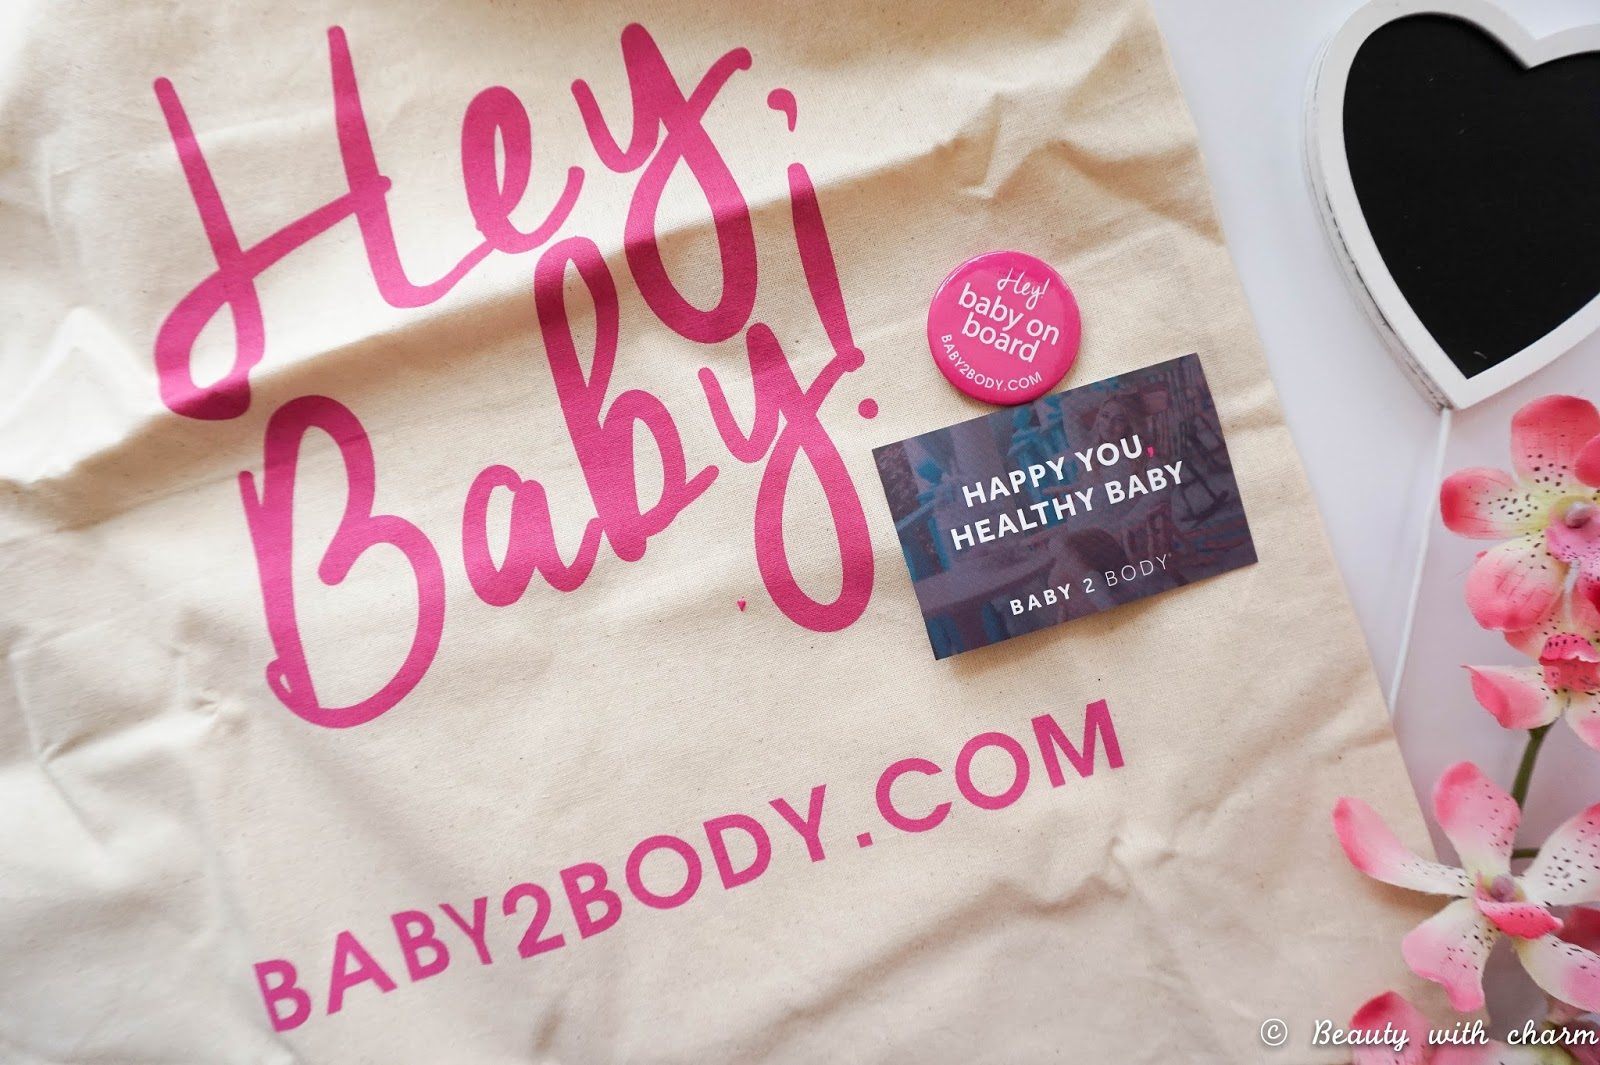 Baby 2 Body Beauty Box